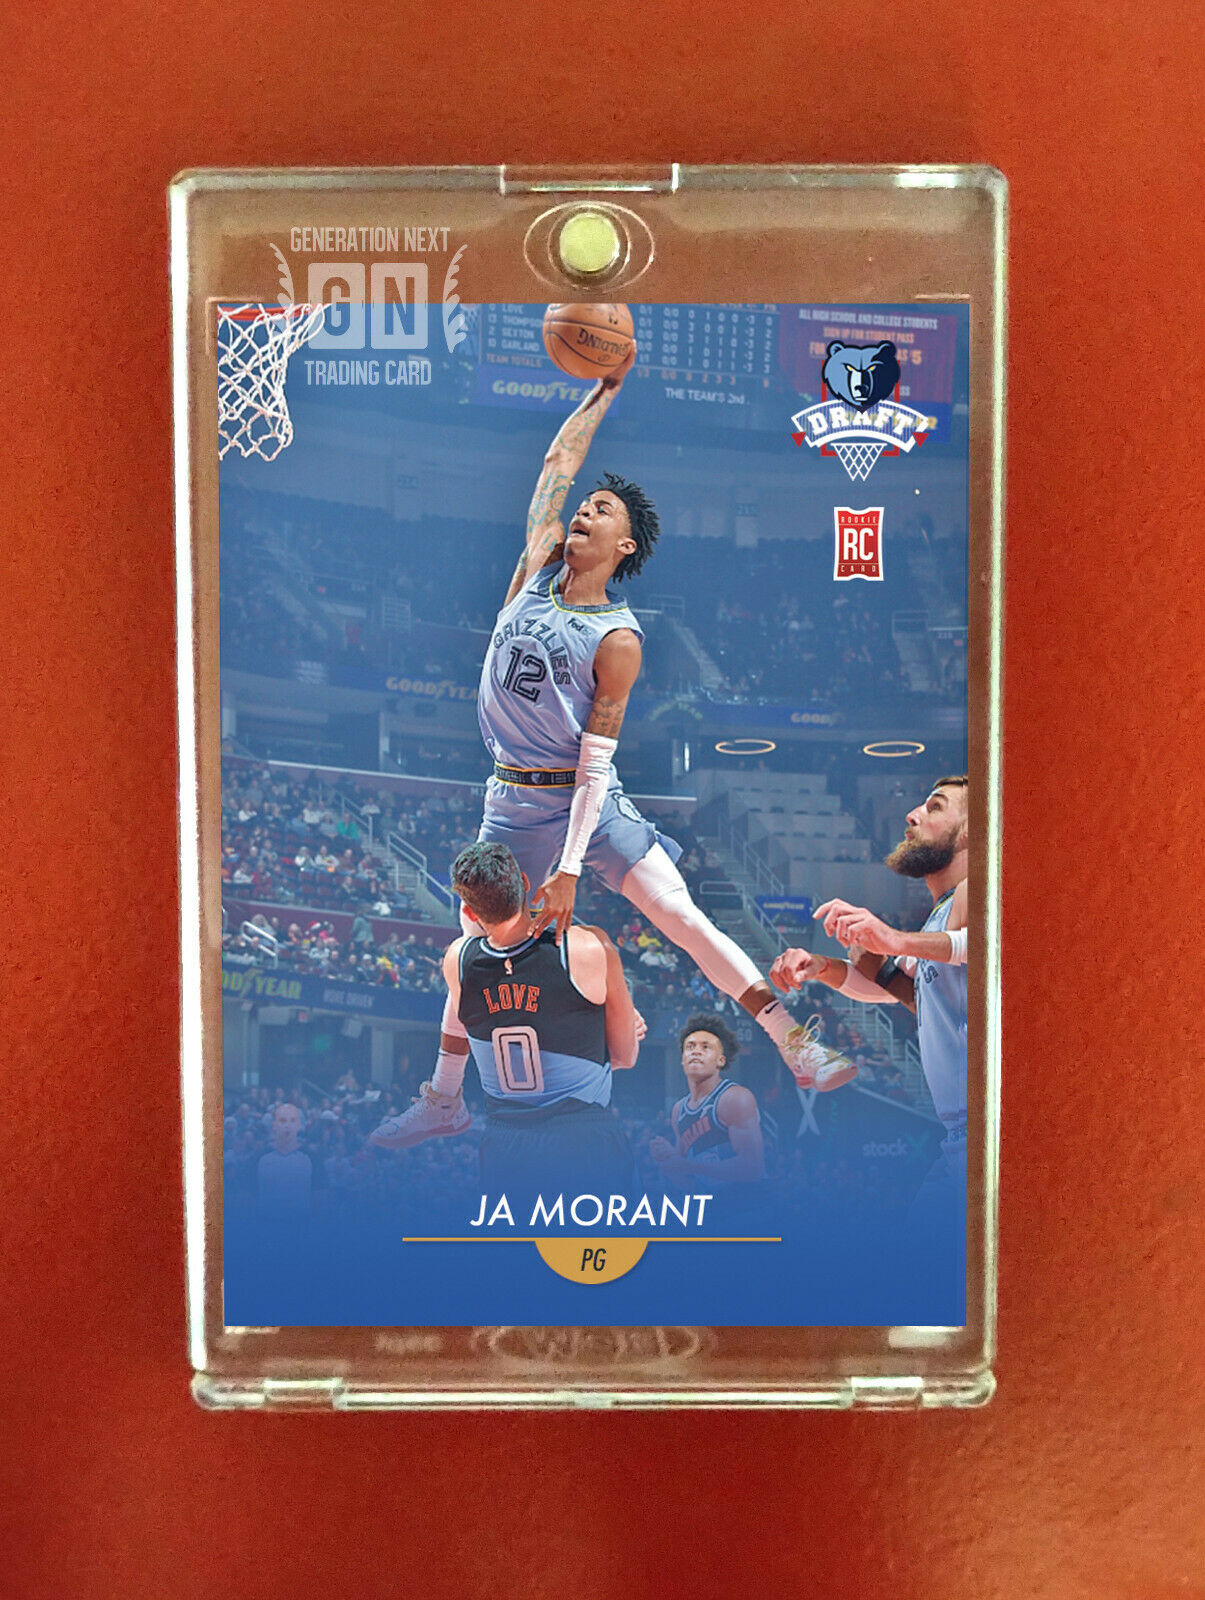 Ja Morant Rookie Card / Memphis Grizzles / Generation Next